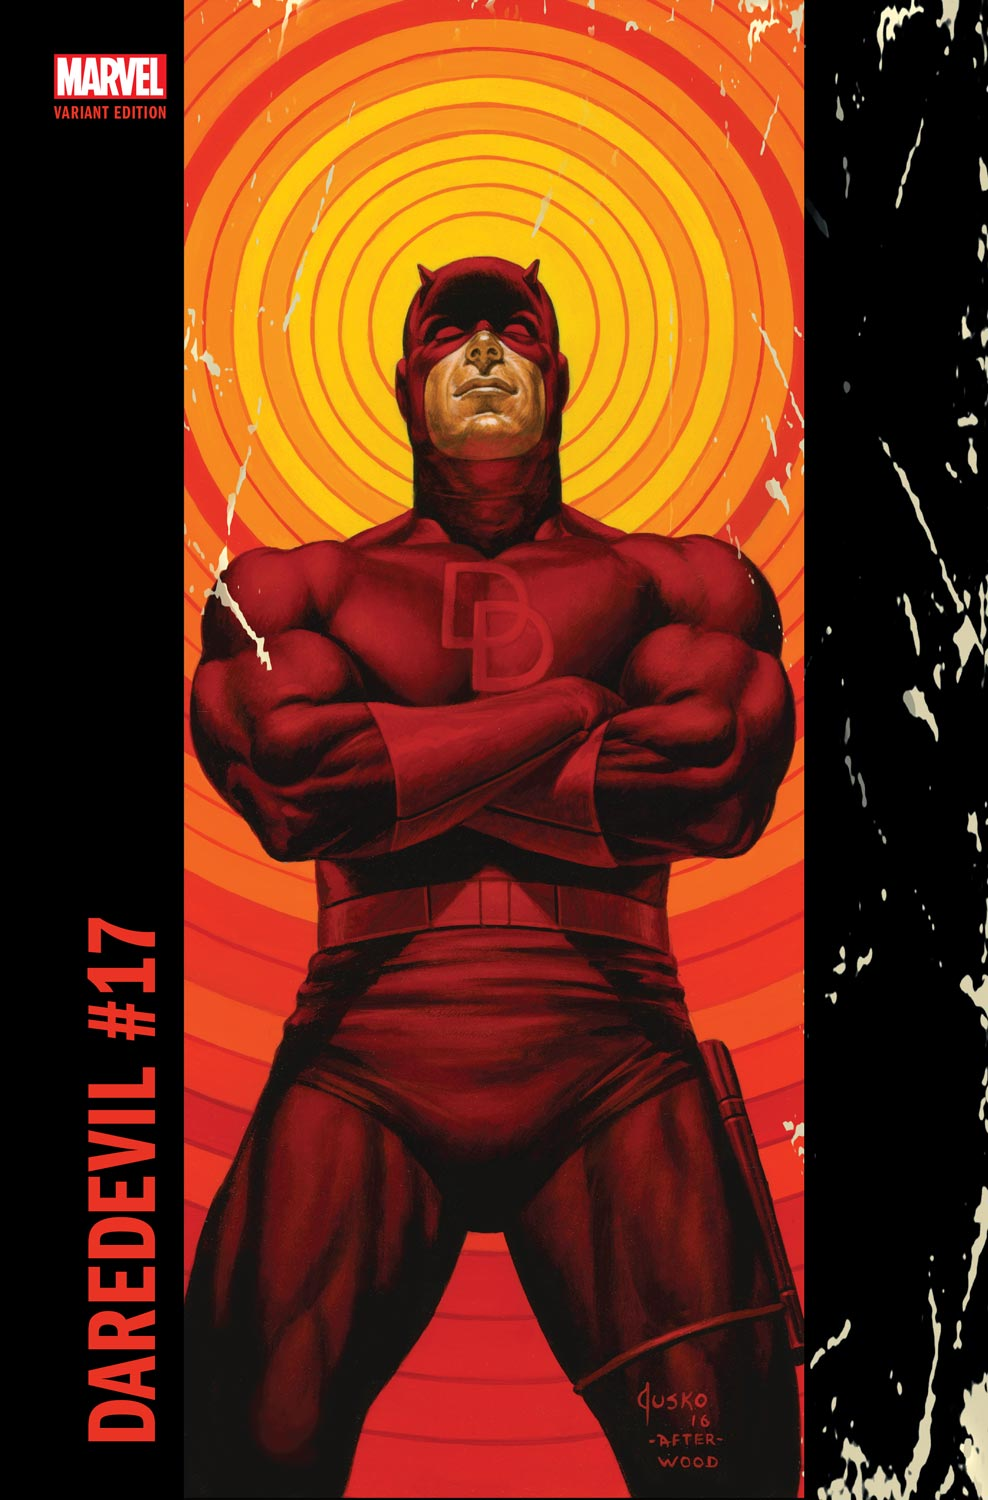 Marvel Offers First Look At Daredevil #17